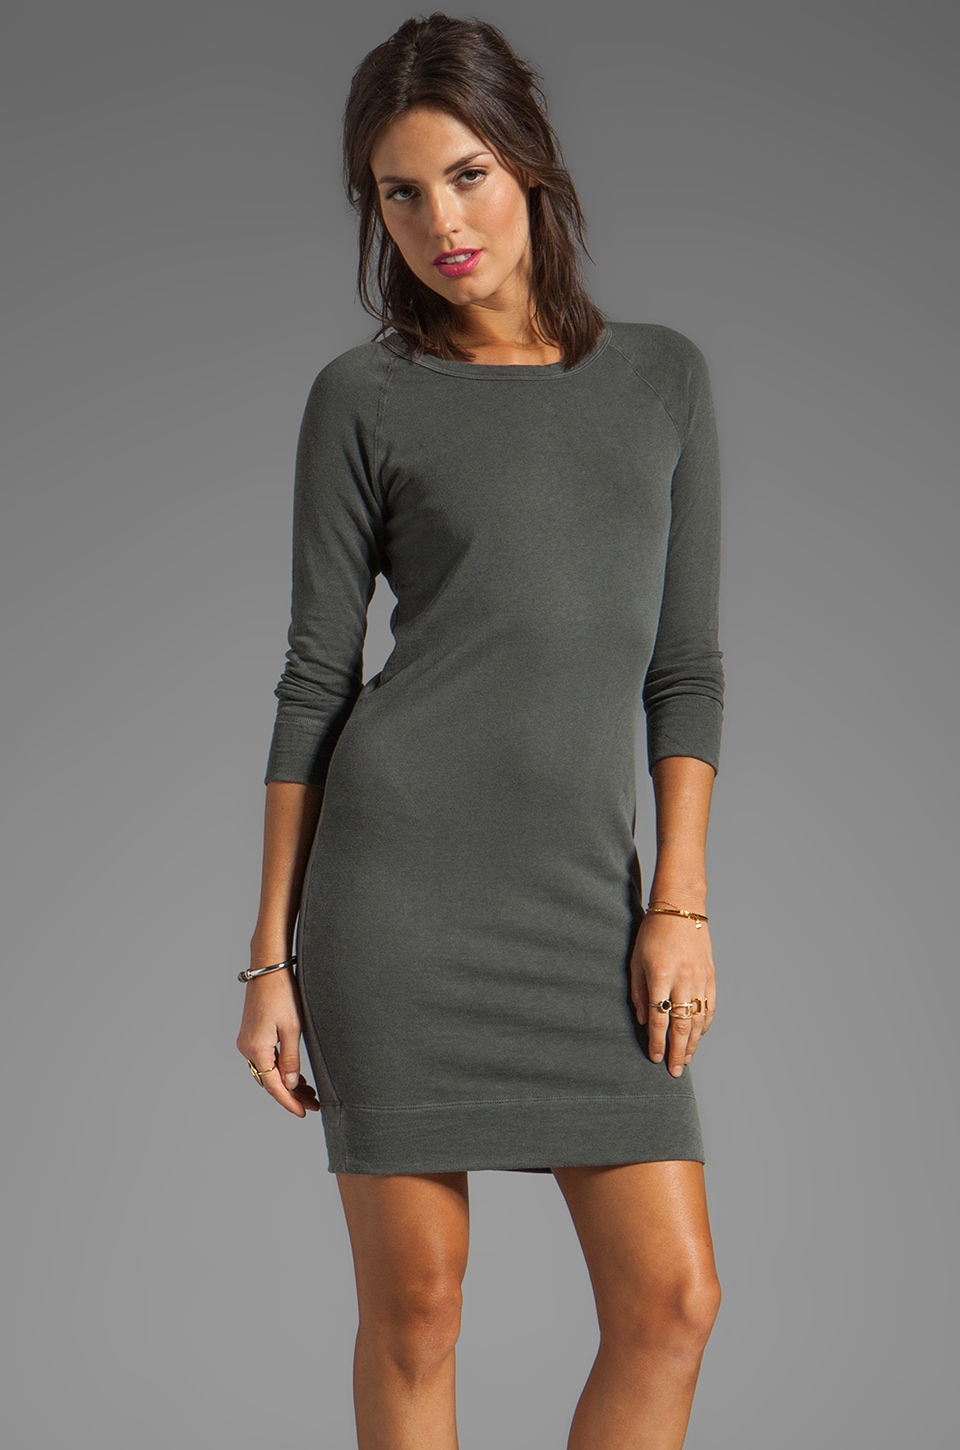 James Perse Raglan Sweatshirt Dress in Charcoal